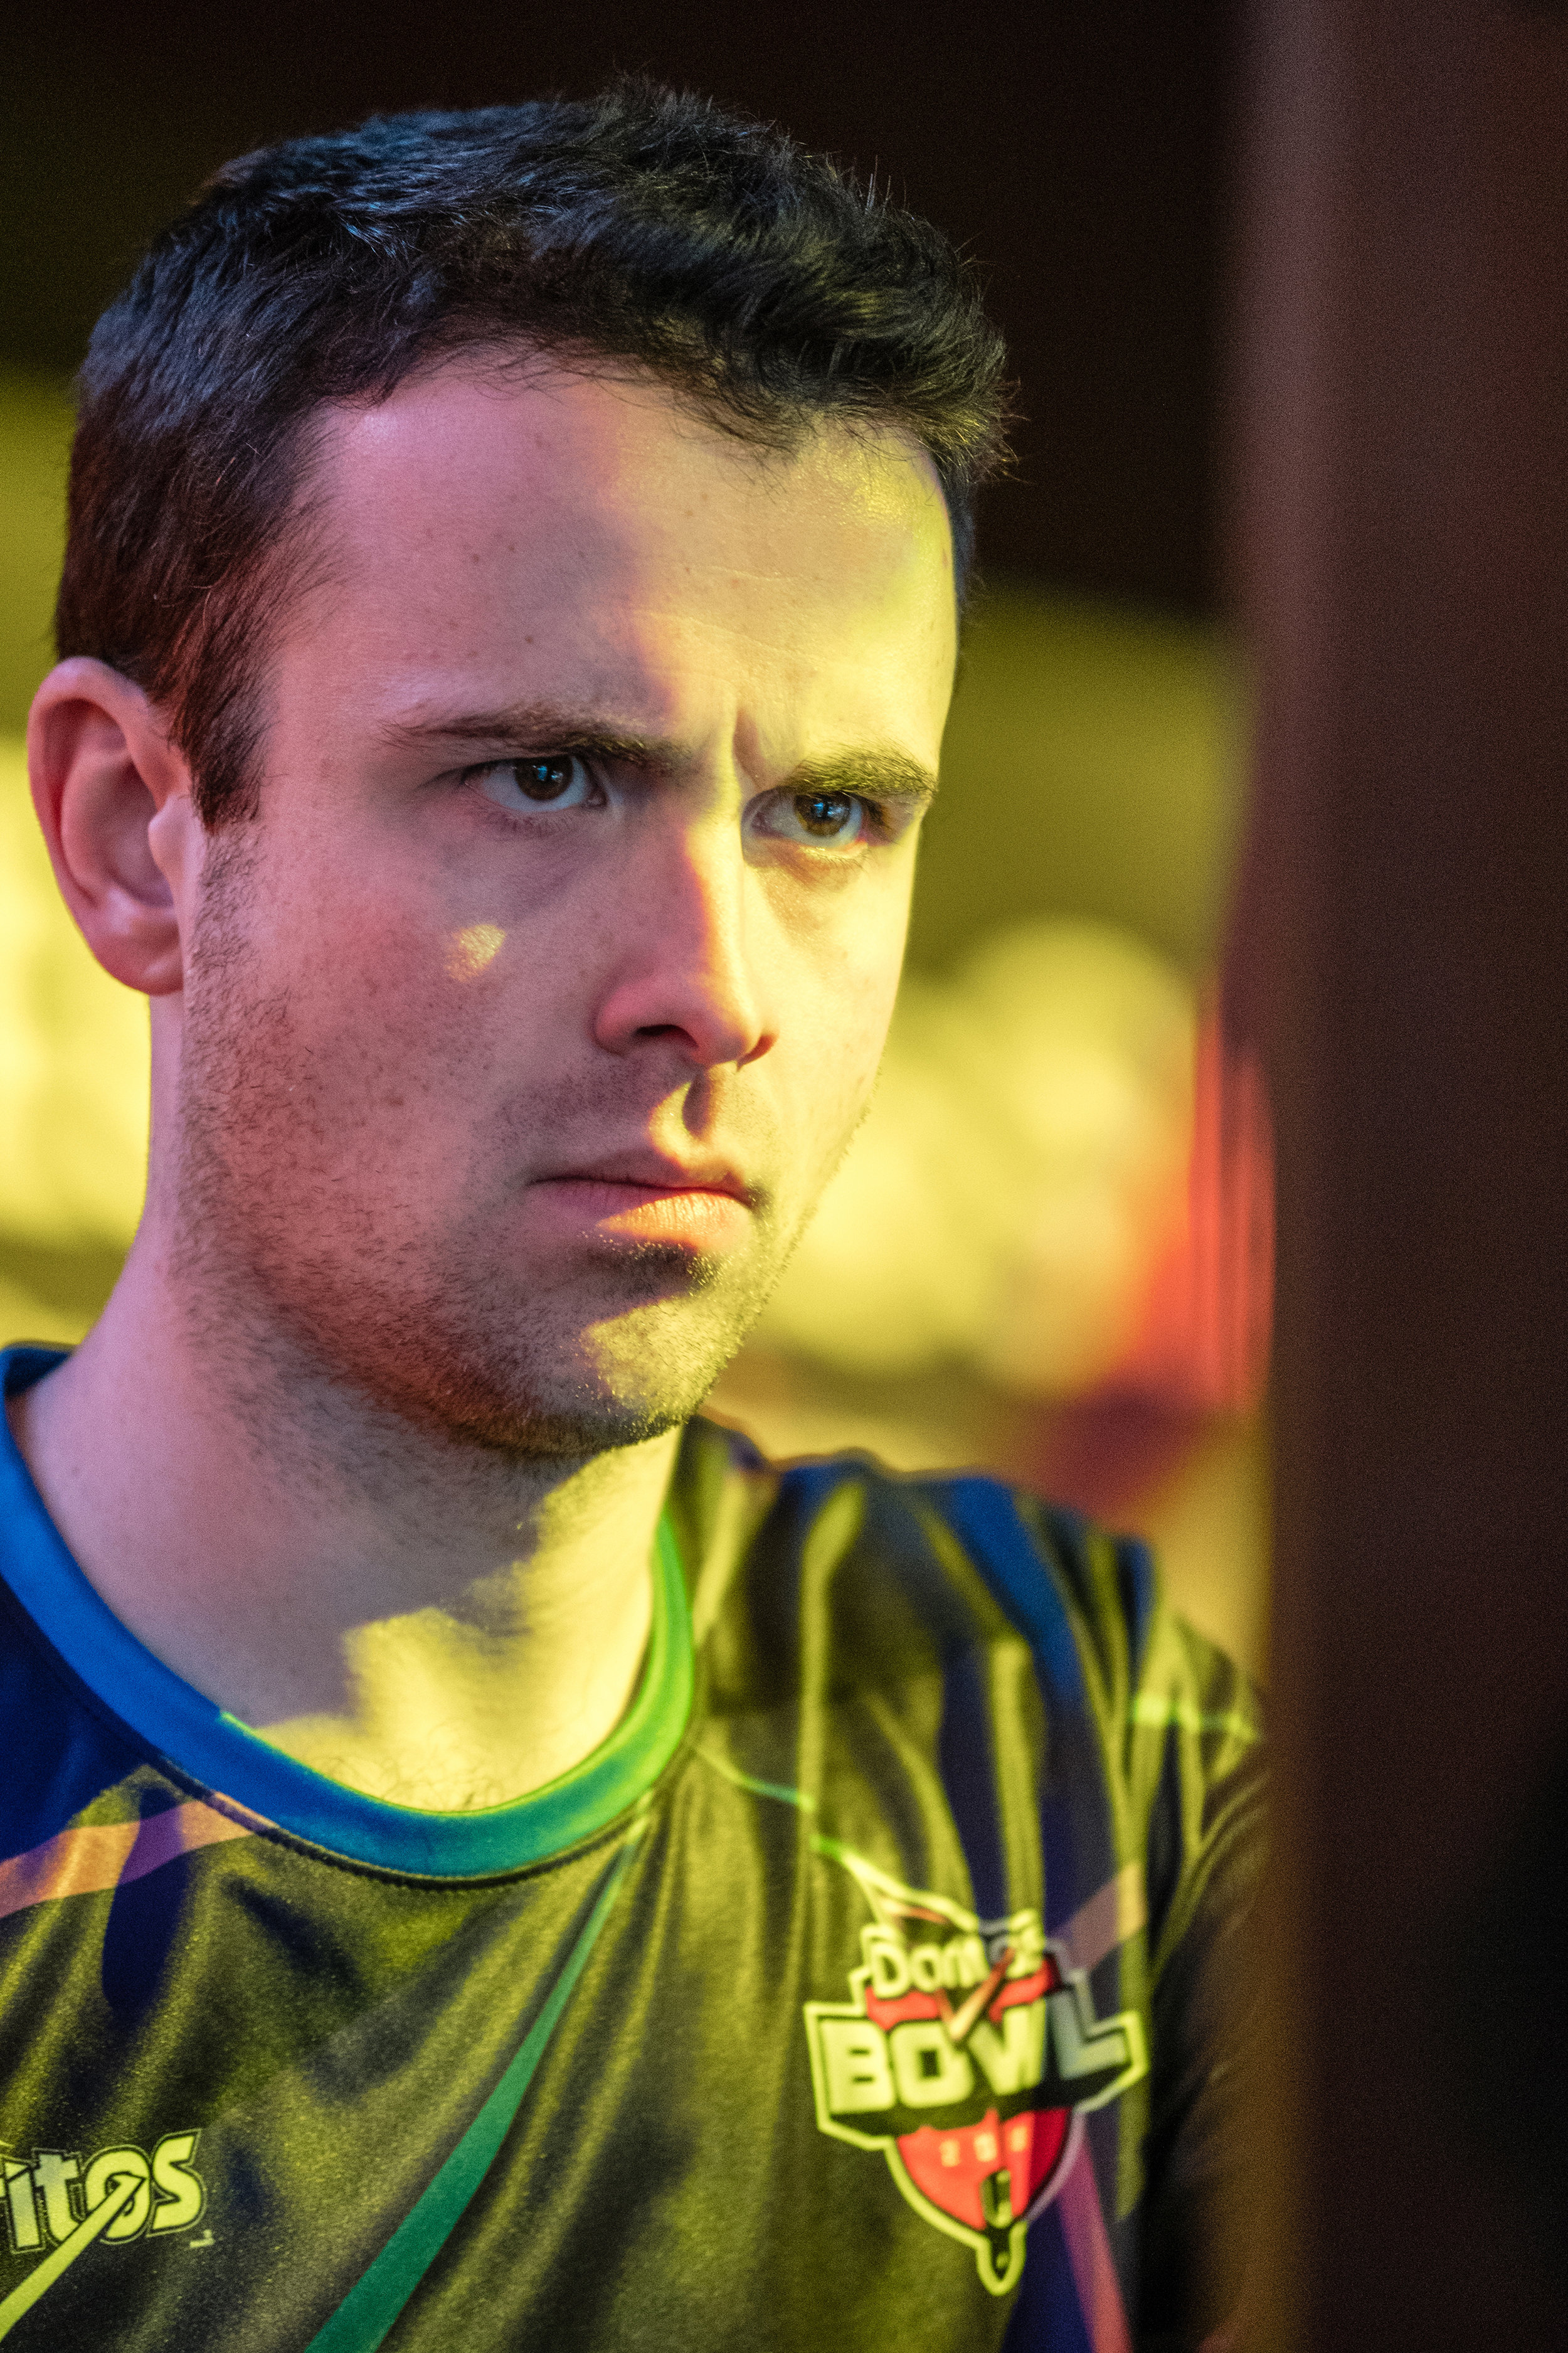 Team DrLupo, competing in the first Doritos Bowl 2018 Call of Duty: Blackout Battle Royale tournament at TwitchCon, San Jose Convention Center on October 27, 2018 in San Jose, California.  Photo by Eric_Ananmalay / ESPAT Media